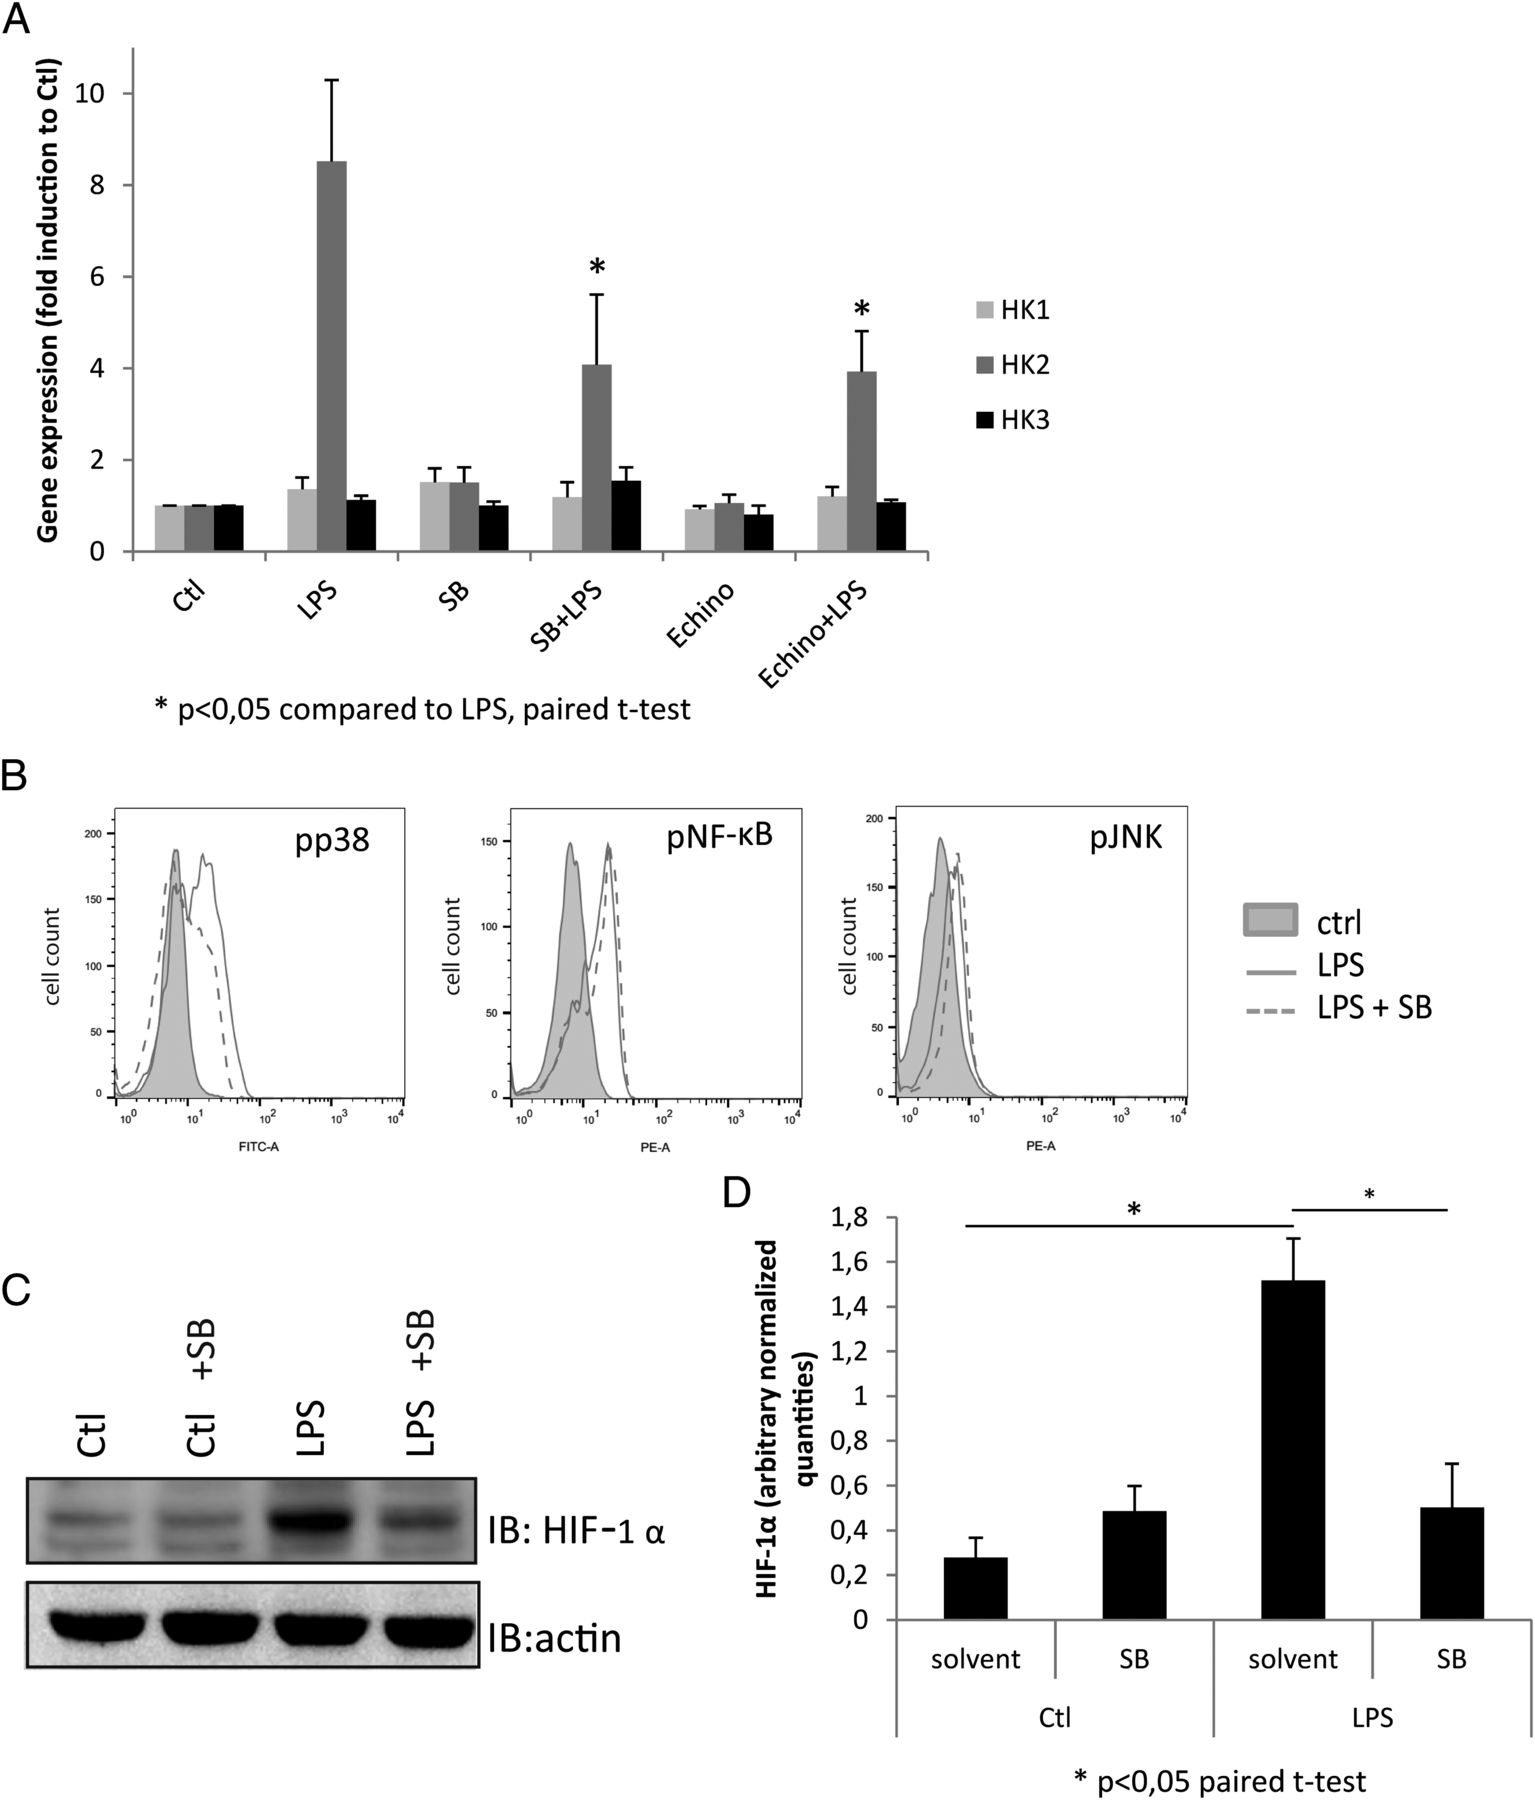 Toll Like Receptor 4induced Glycolytic Burst In Human Monocyte Curtis 1510 Controller Wiring Diagram Download Figure